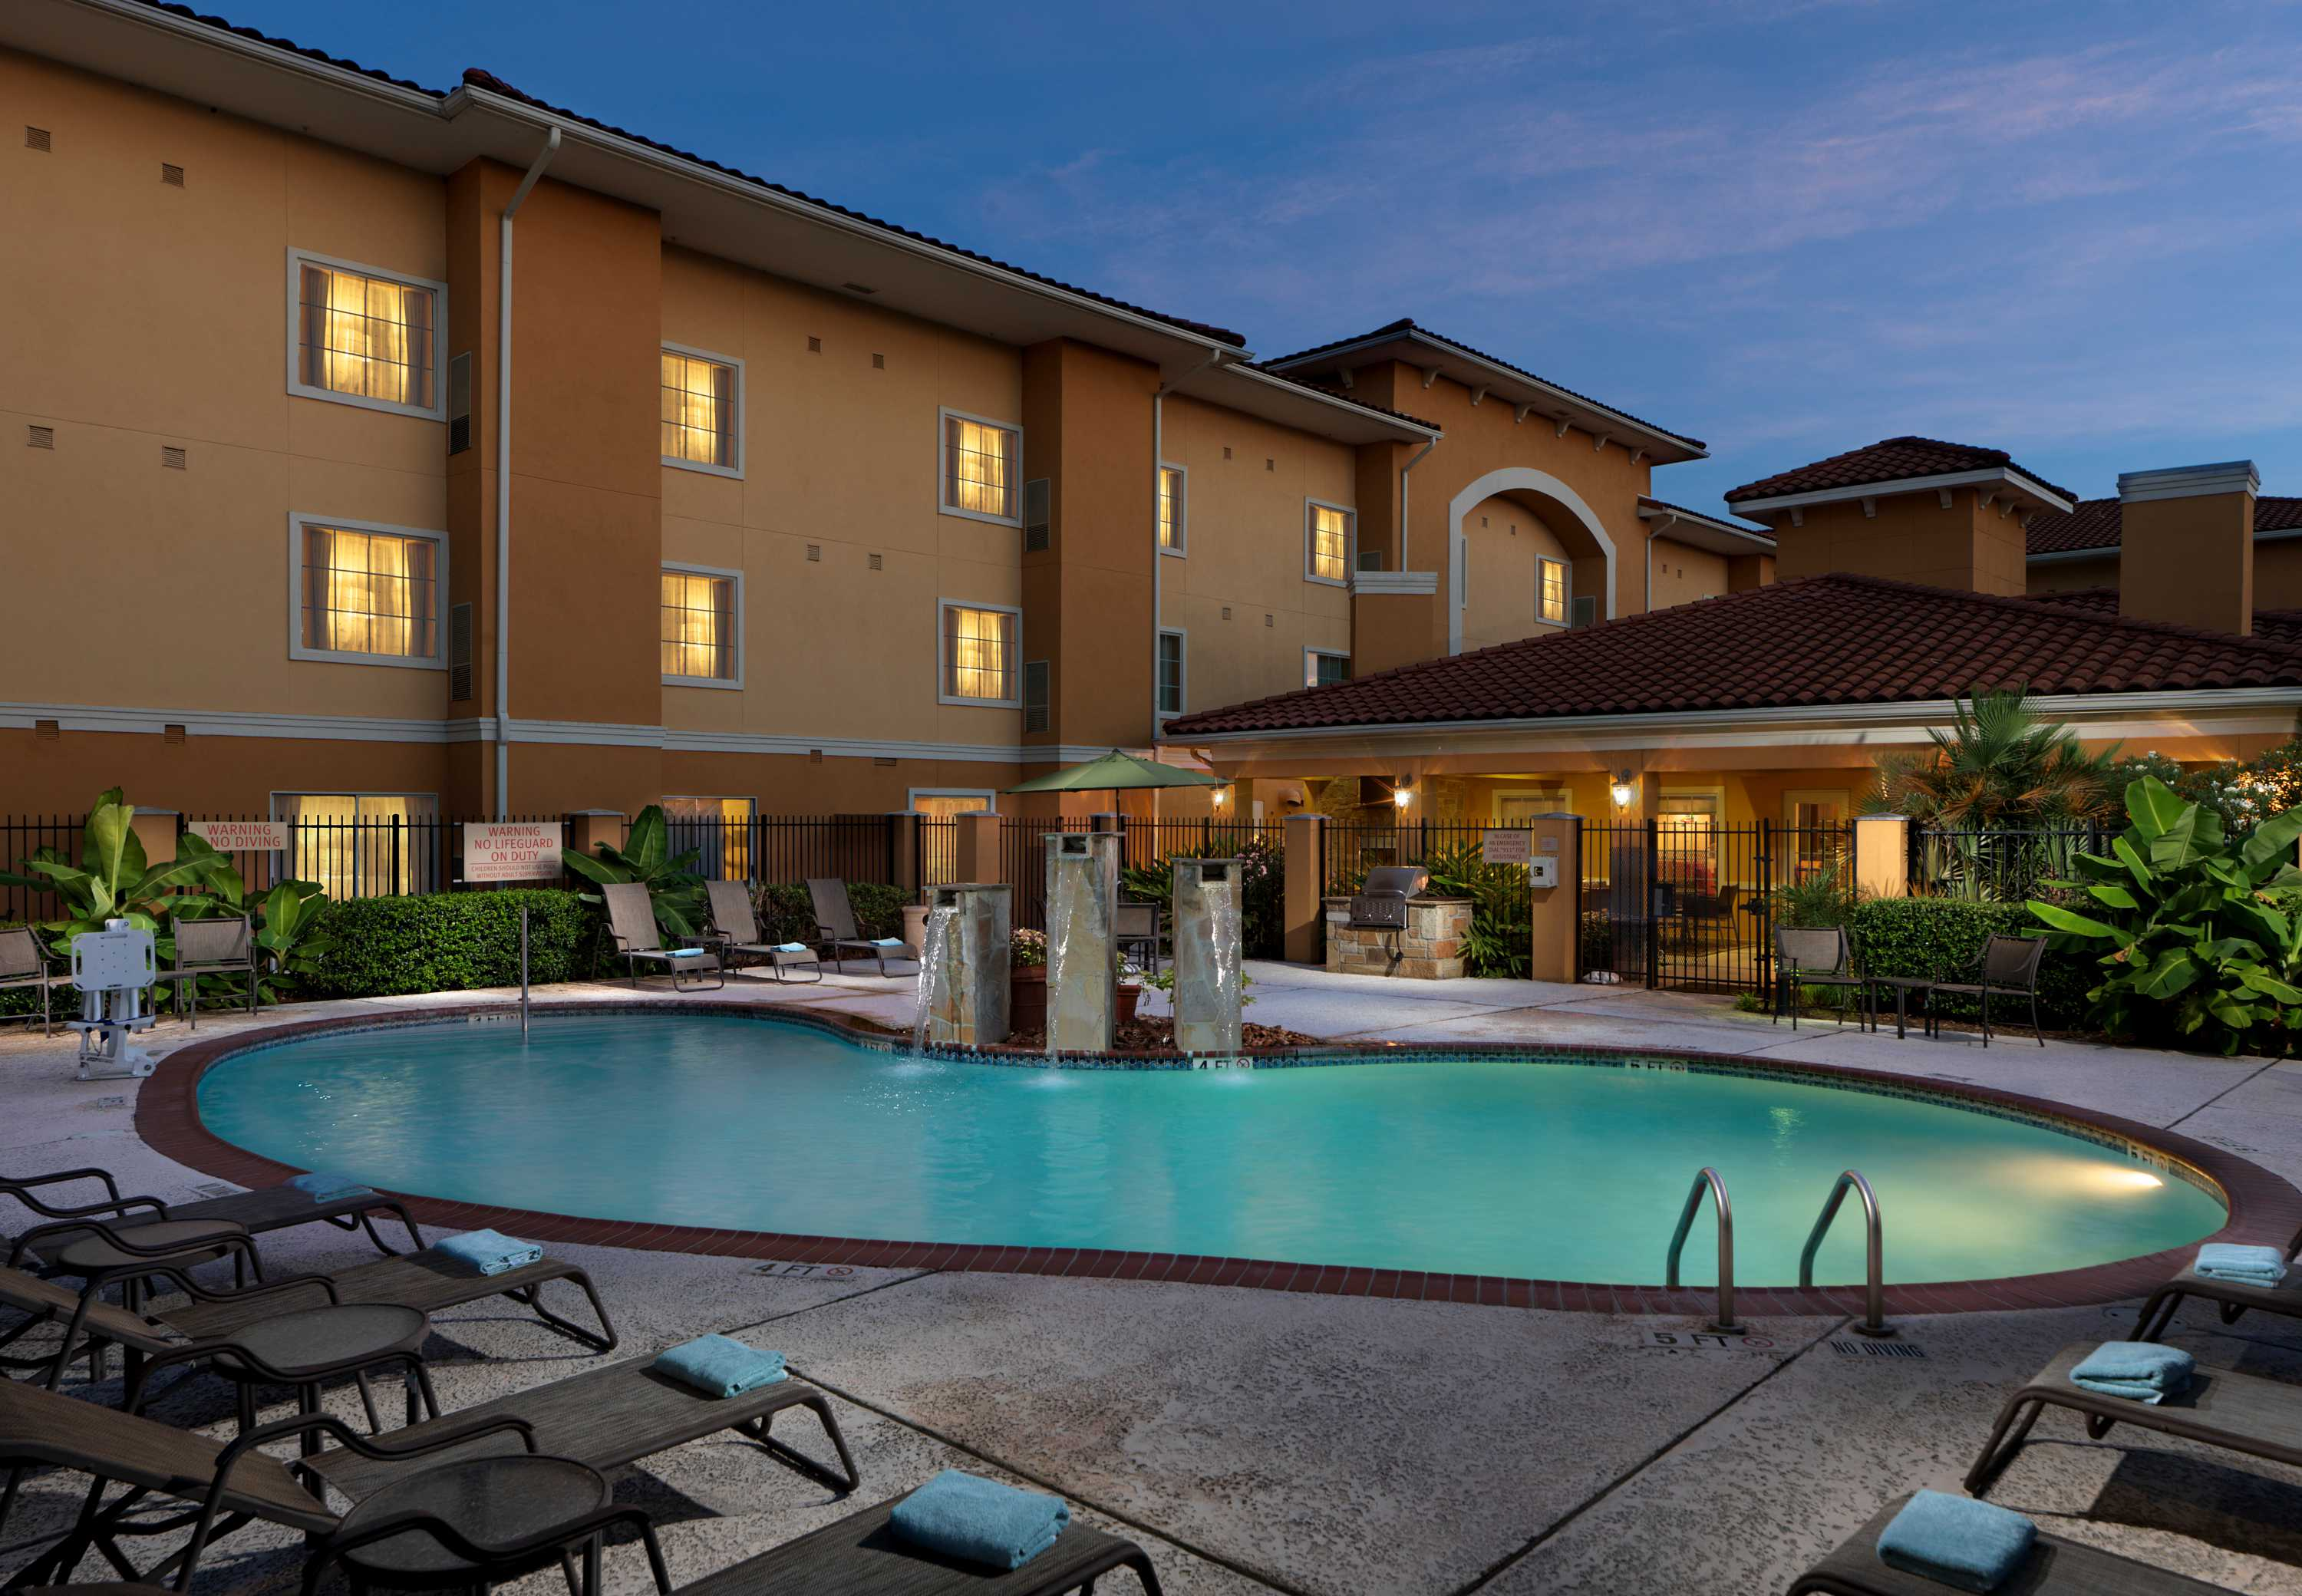 TownePlace Suites by Marriott Houston North/Shenandoah image 10